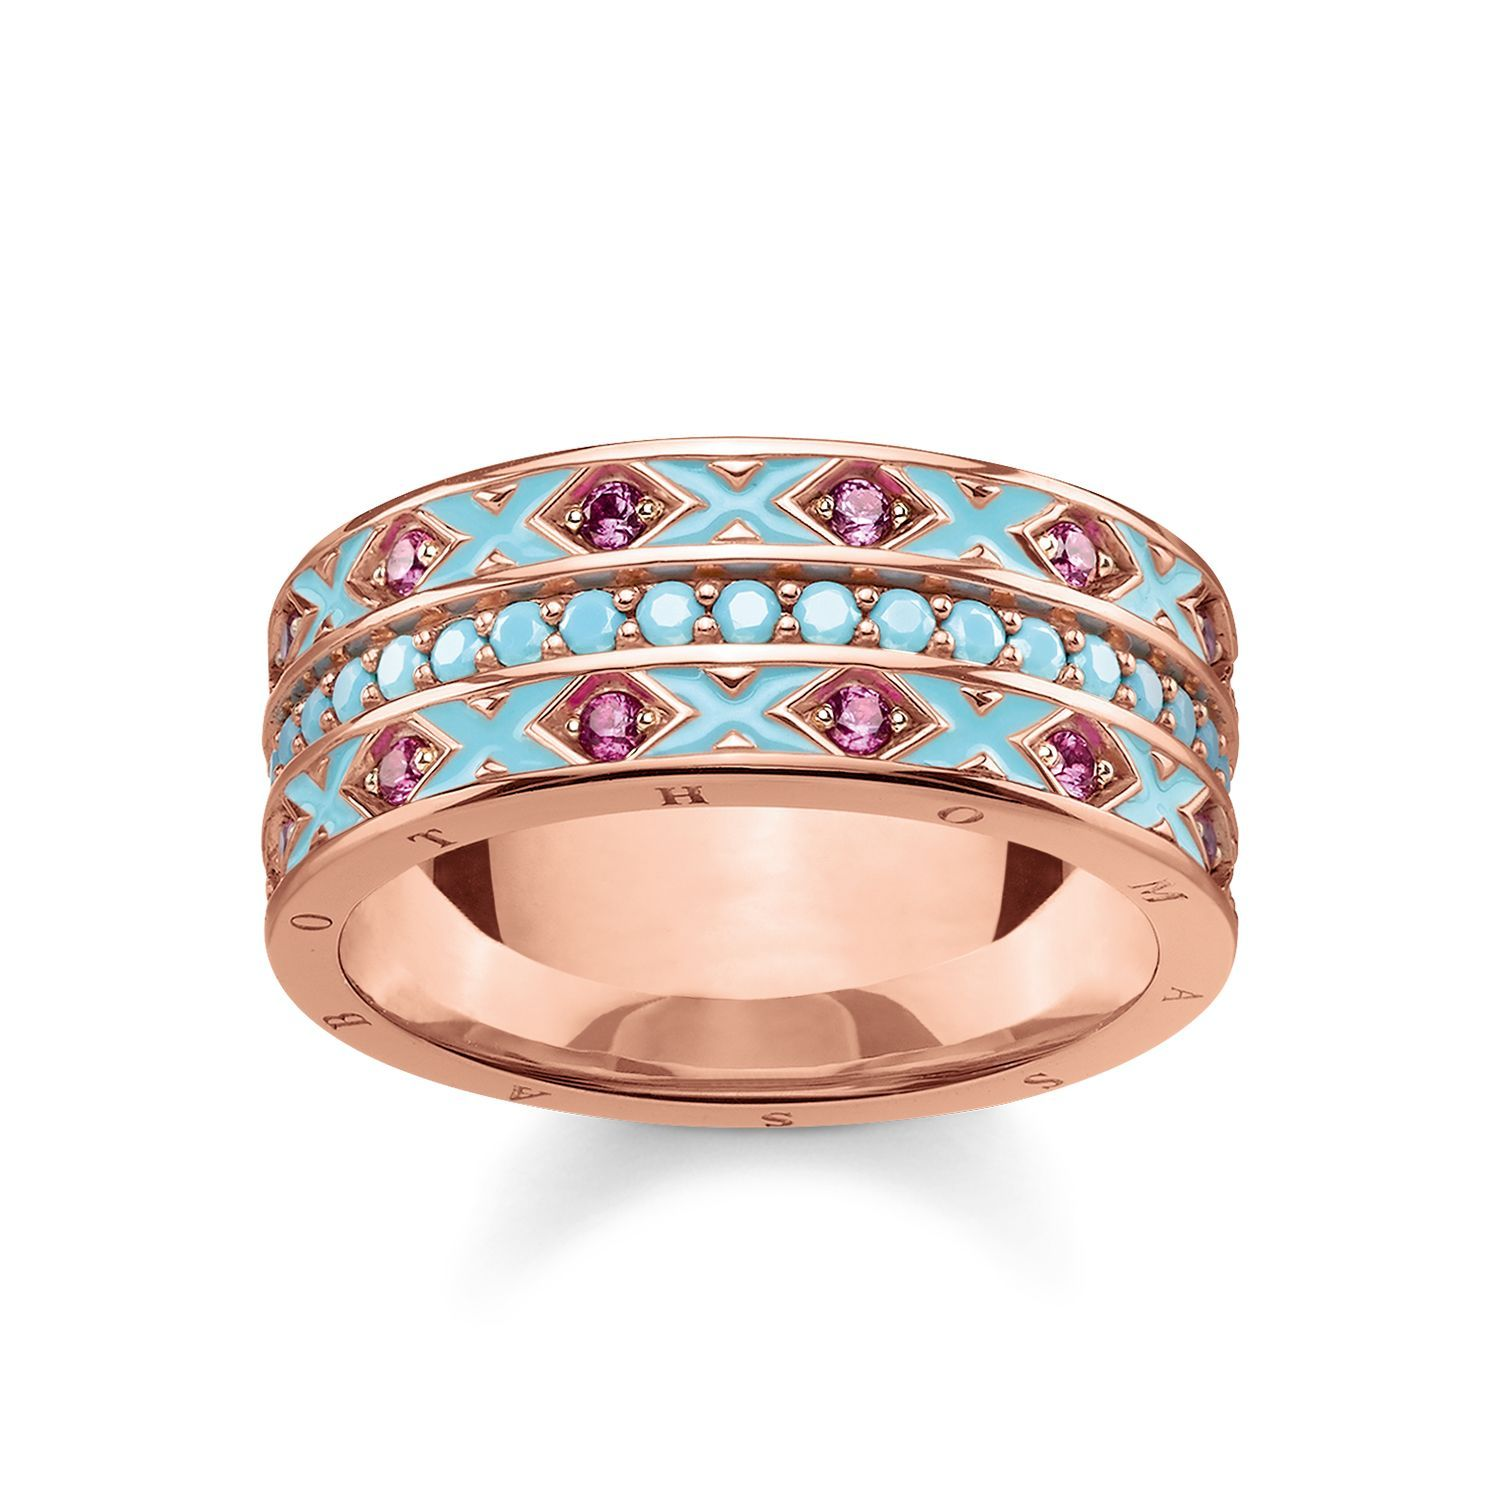 Ring Asian Ornaments With Images Delicate Gold Jewelry Colored Diamond Jewelry Thomas Sabo